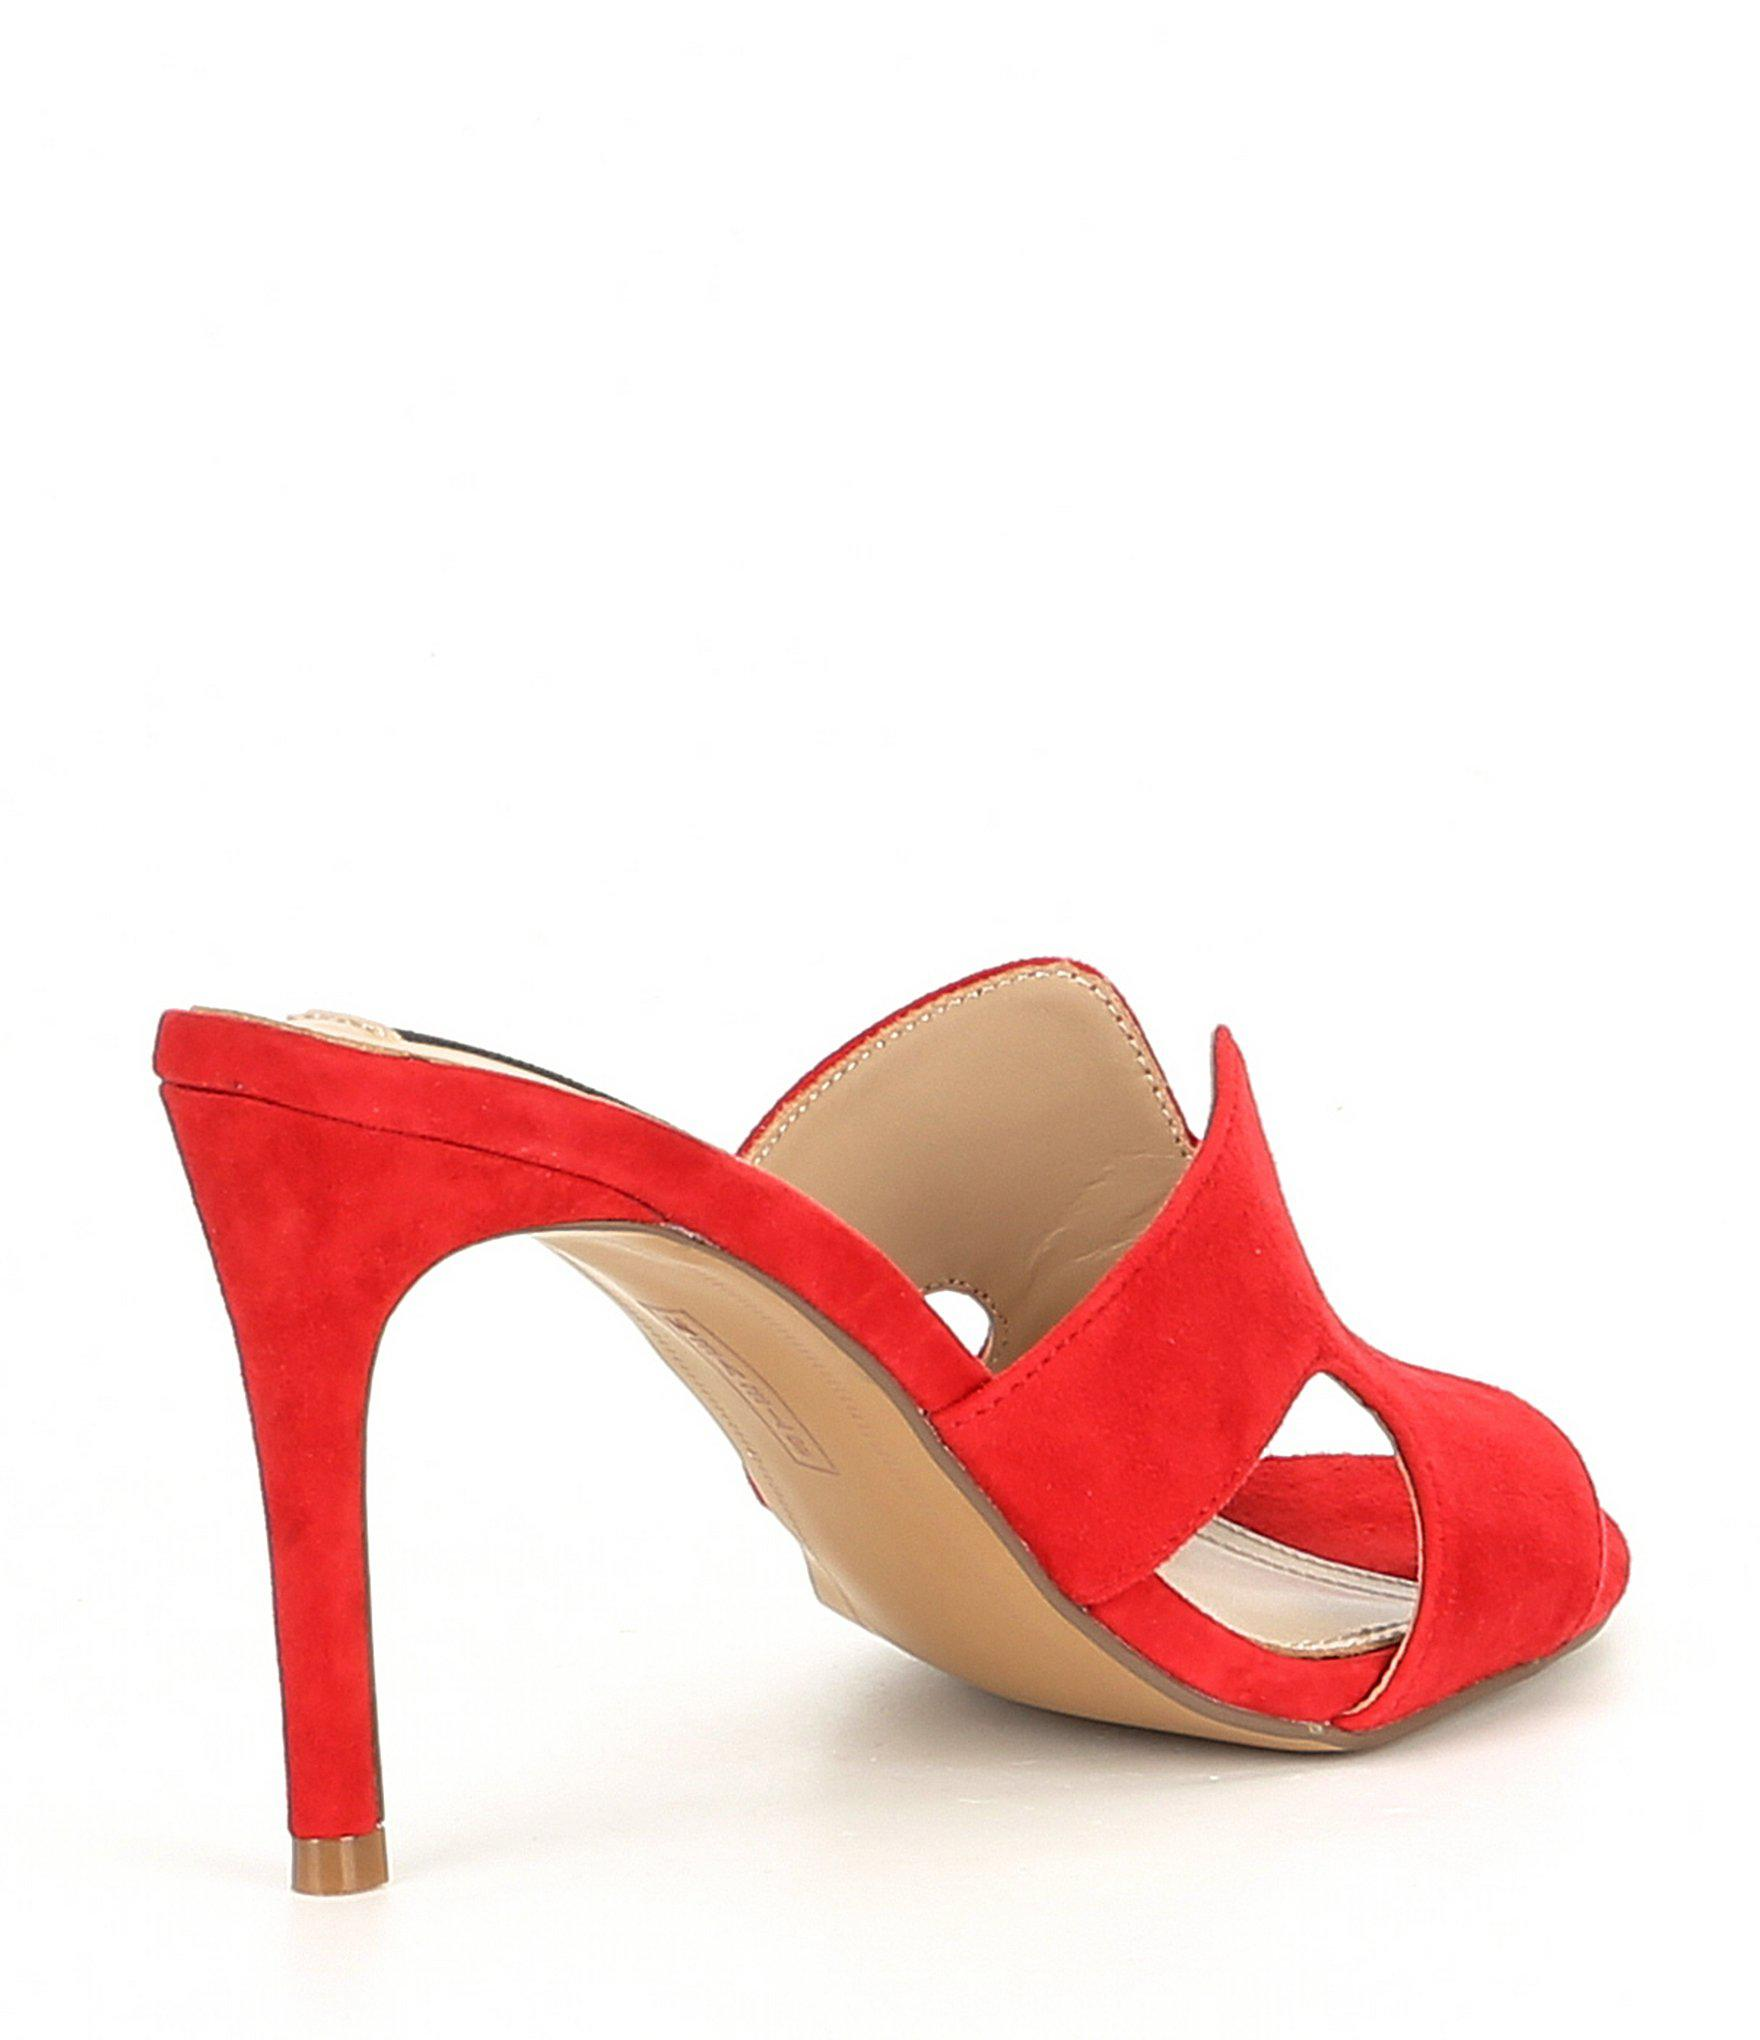 fa66cdd4c1 Steve Madden - Red Steven By Nylah Suede Stiletto Pumps - Lyst. View  fullscreen